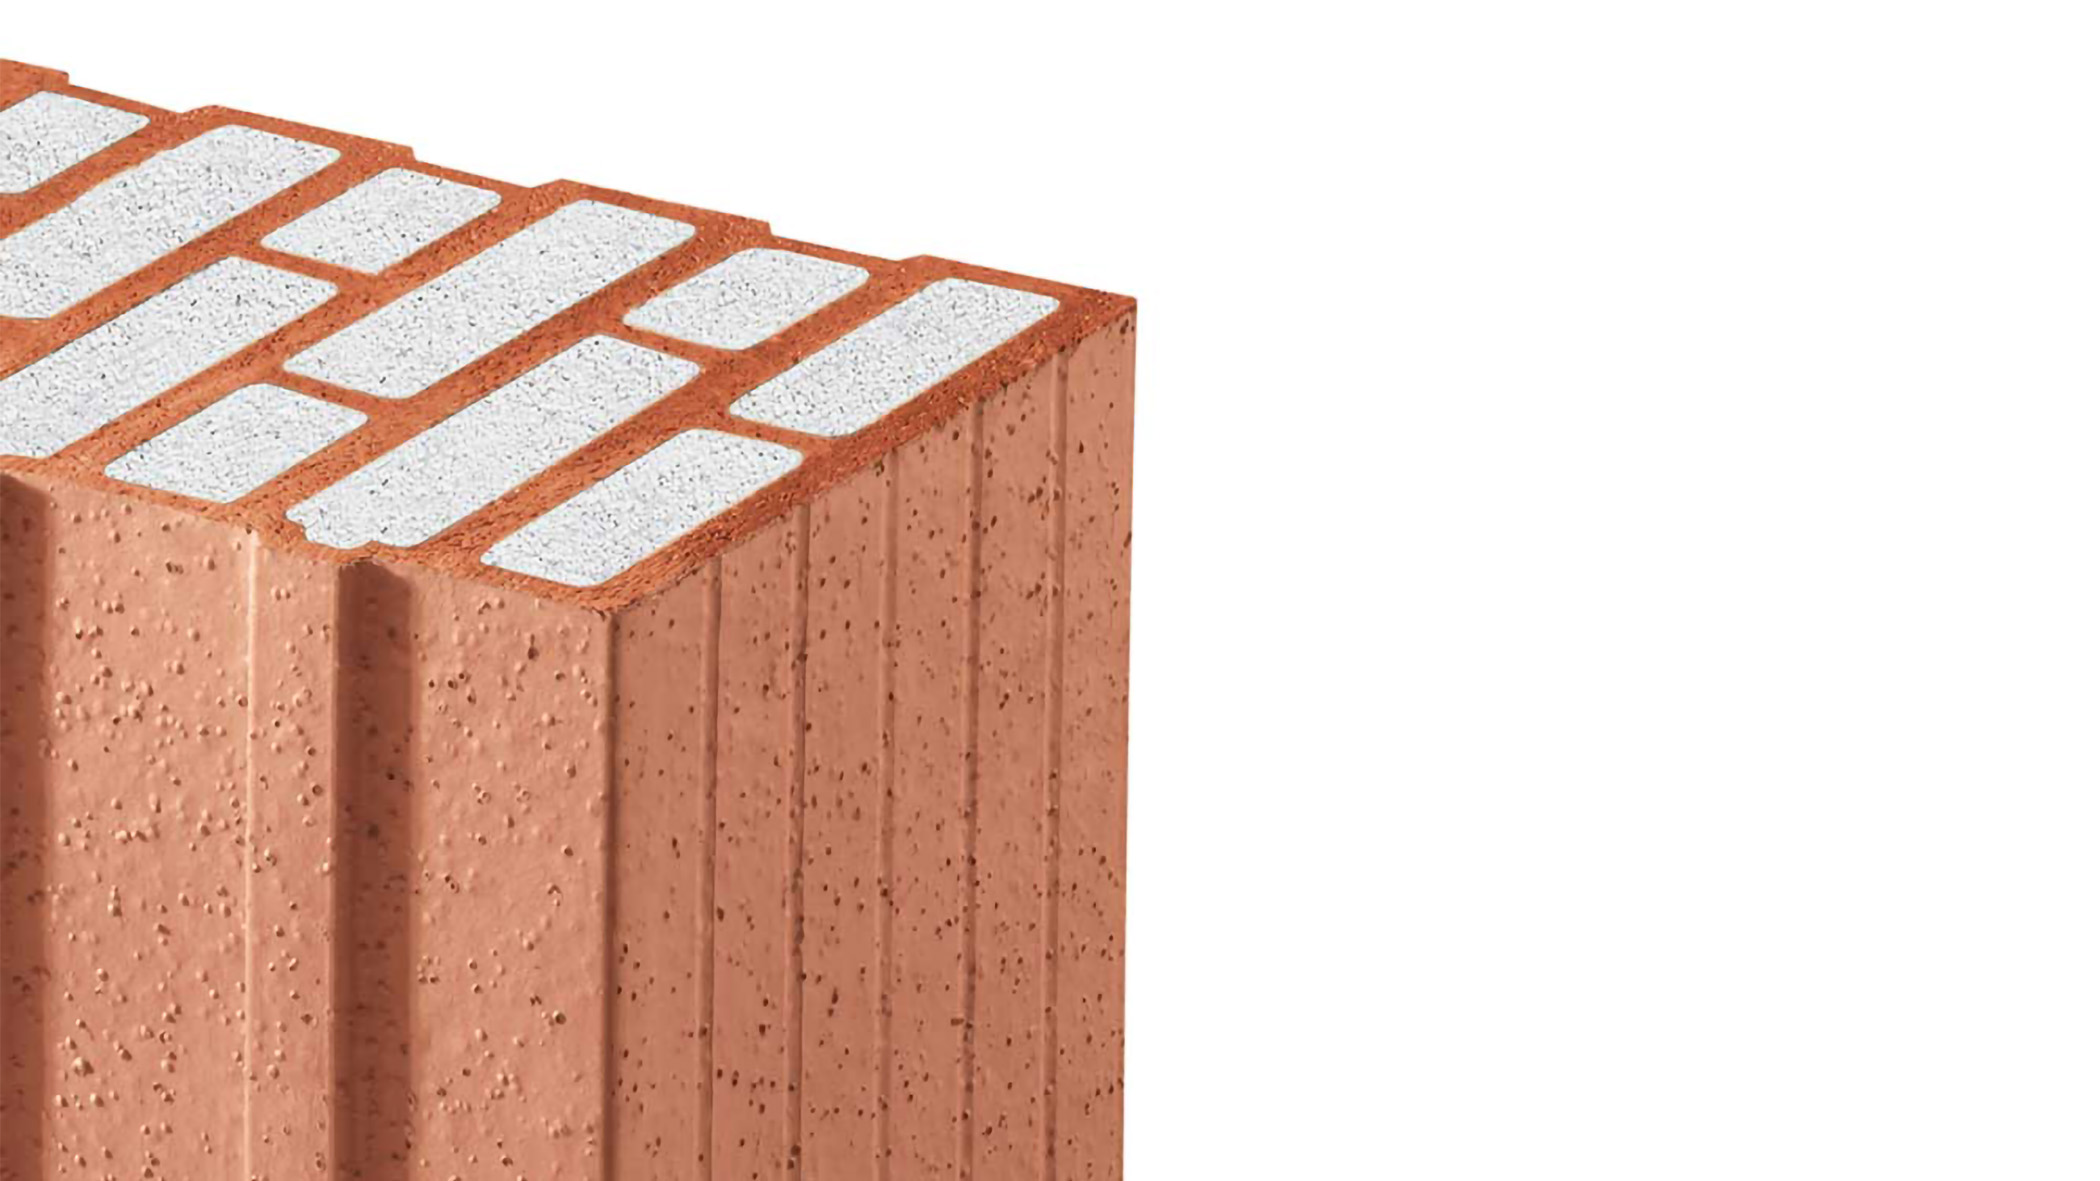 schlagmann poroton poroton t9. Black Bedroom Furniture Sets. Home Design Ideas